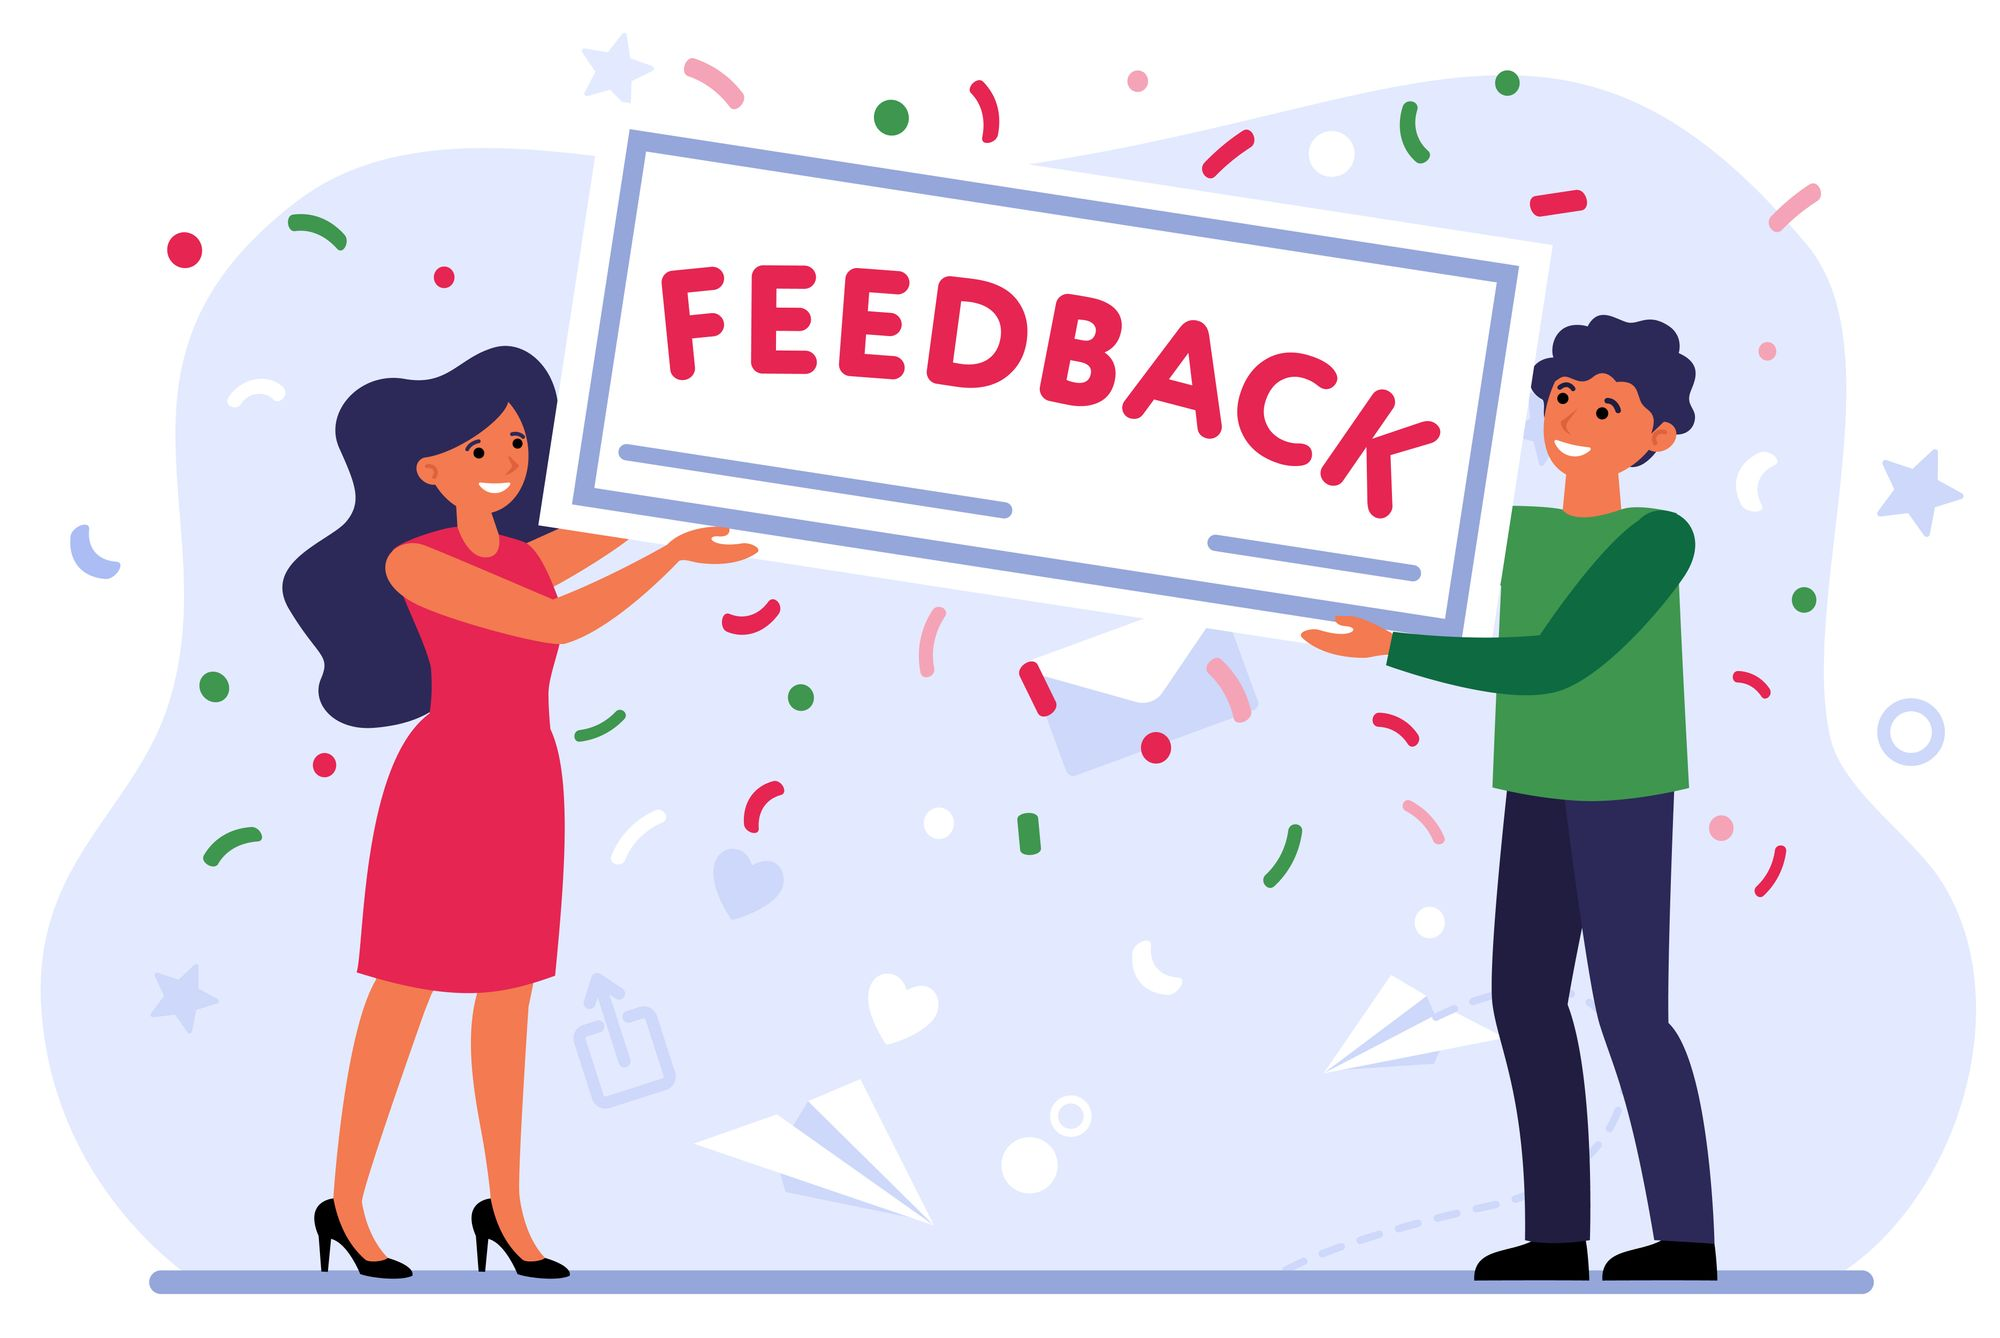 How to build a feedback loop